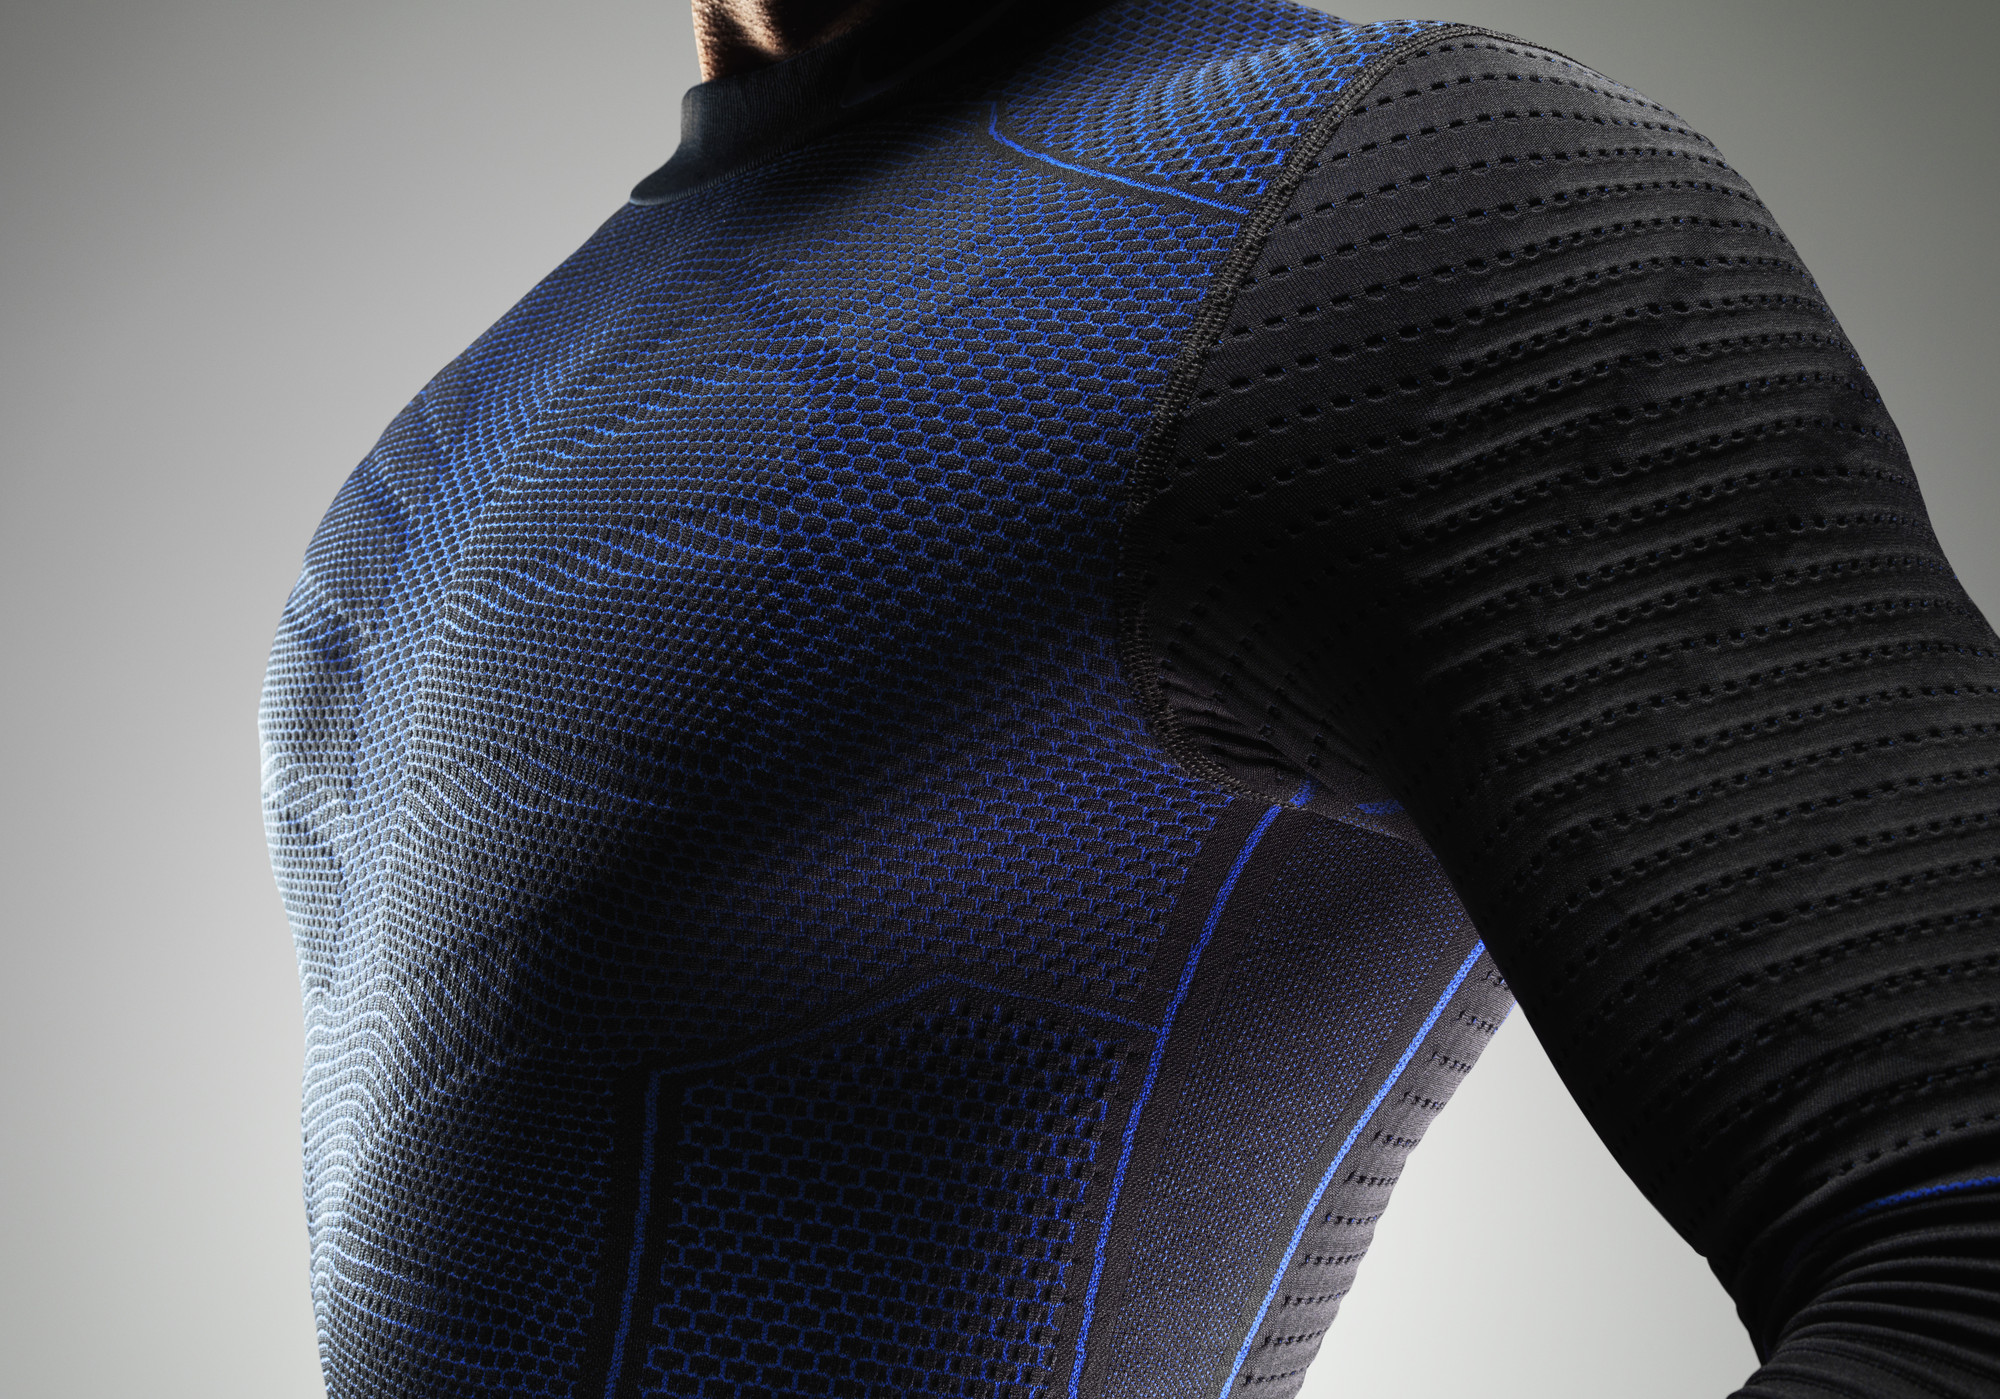 d6e9499017d4e Nike Pro Combat Hyperwarm Flex Base Layer for Winter Athletes - Urbasm